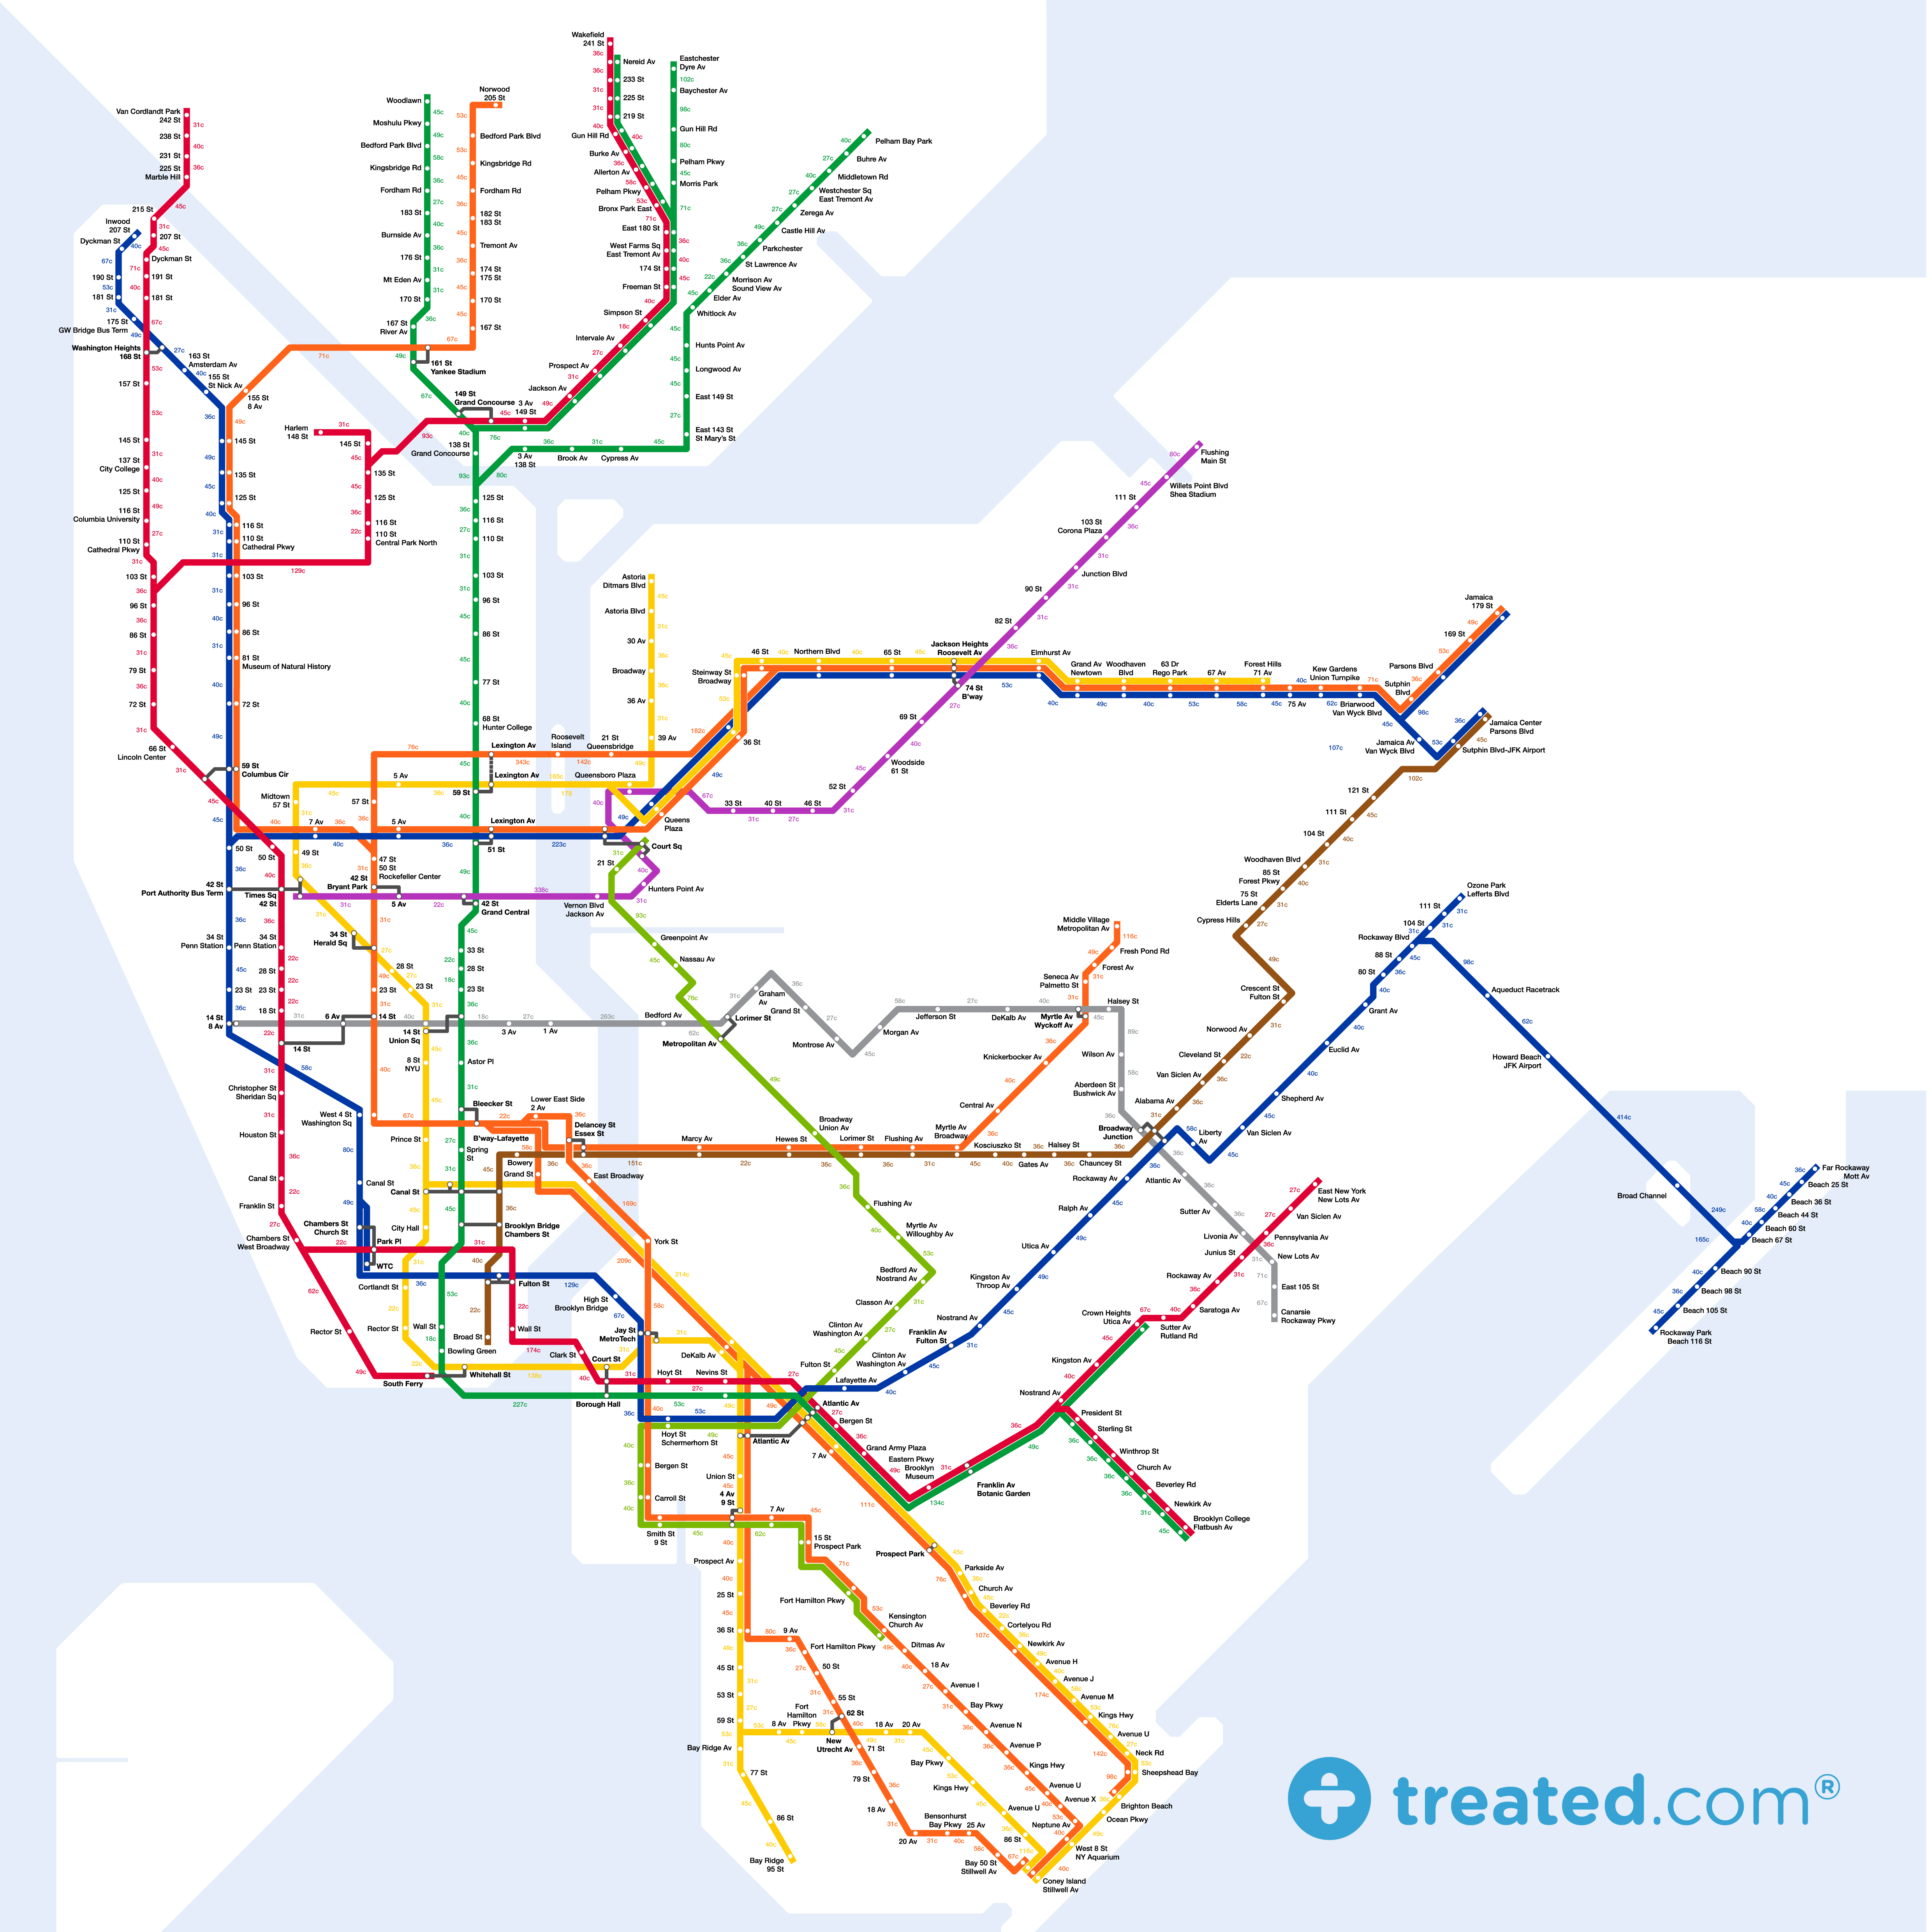 Cool Subway Map Shows How Many Calories You Would Burn By Walking ...